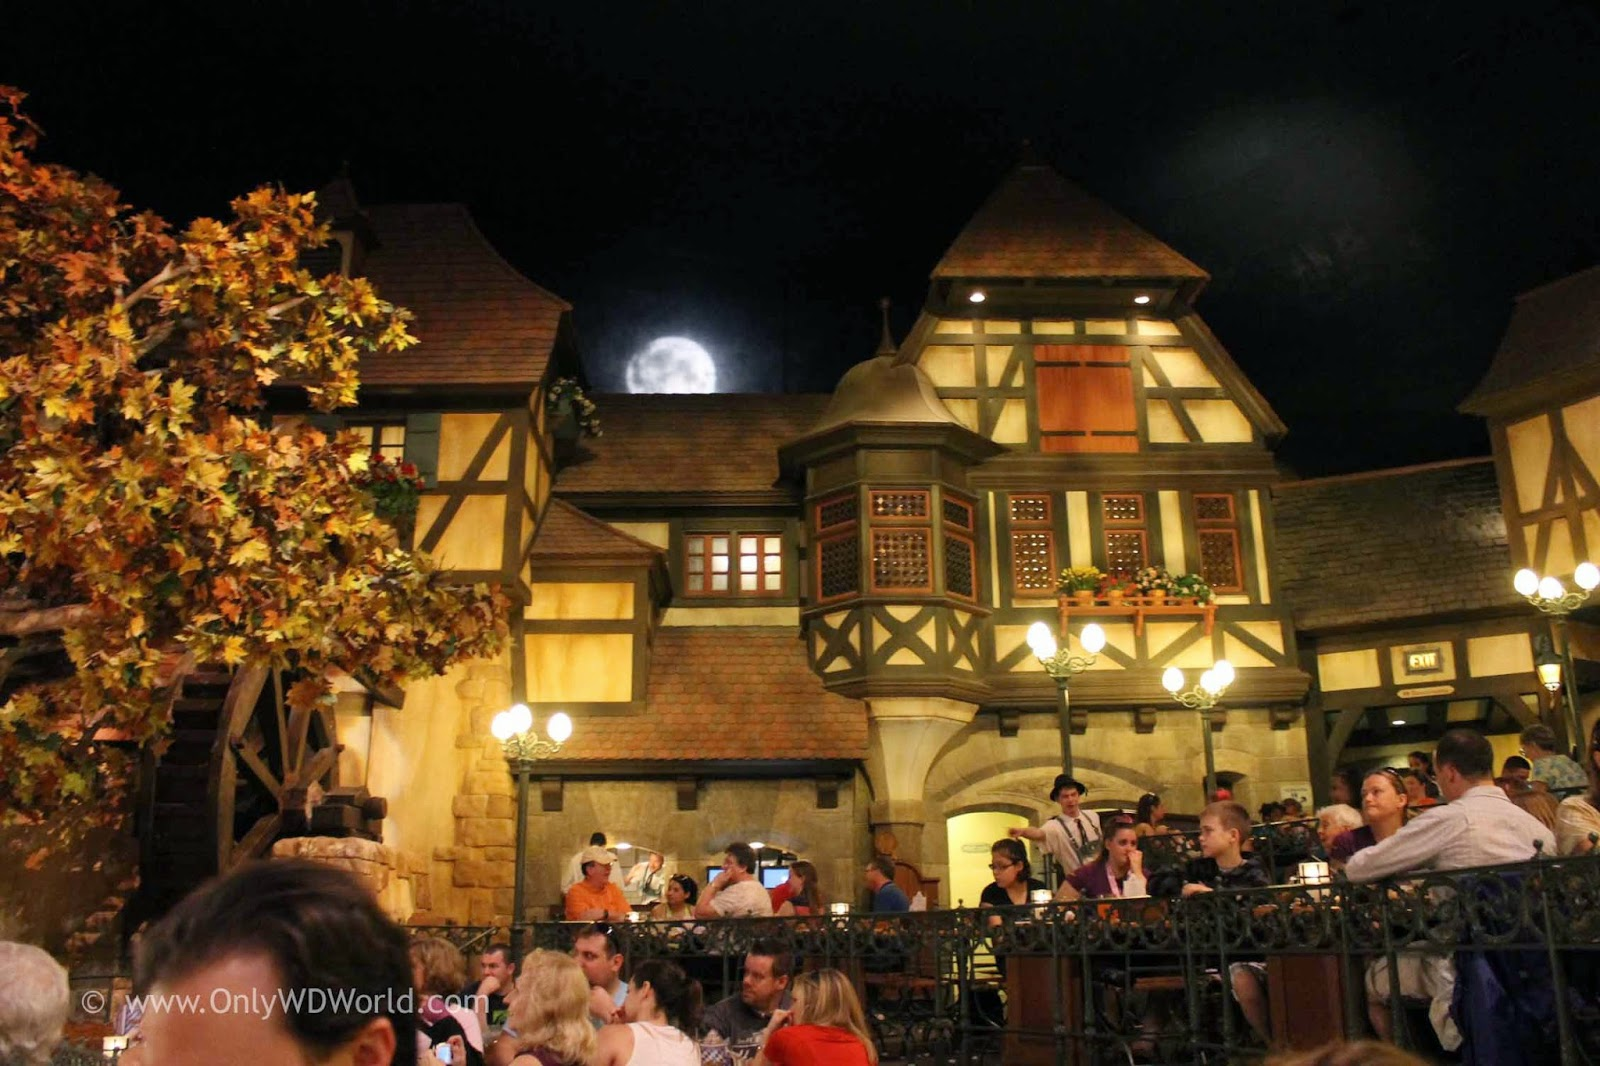 Disney world top 6 restaurants in epcot disney world - Best table service restaurants at disney world ...